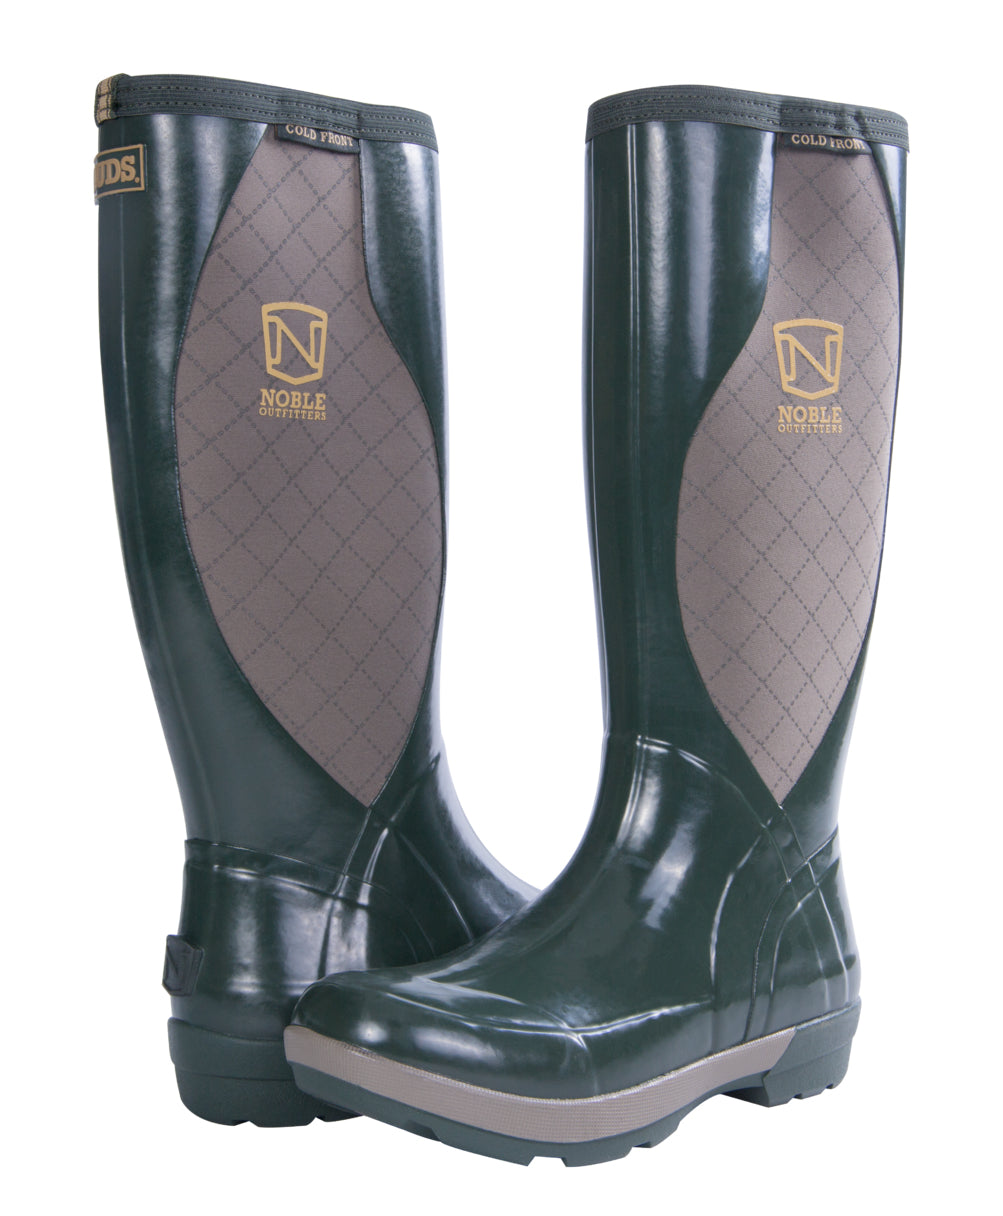 Noble Outfitters MUDS Cold Front Women's High Boots - SALE - North Shore Saddlery